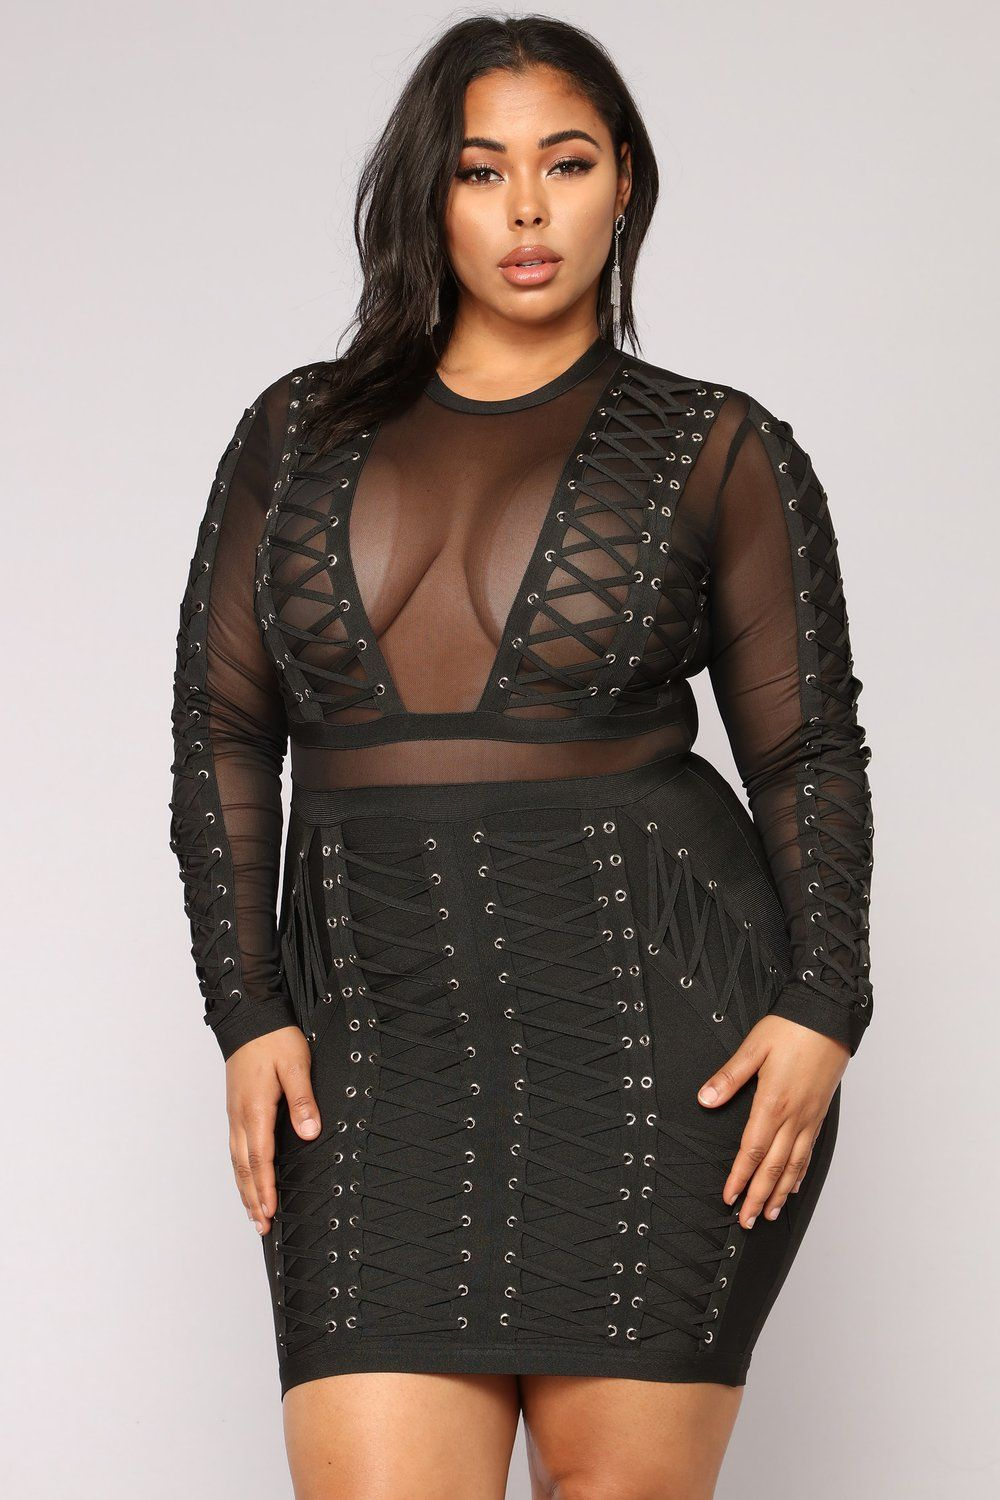 Down With The Clique Bandage Dress - Black in 2019   Plus size ...